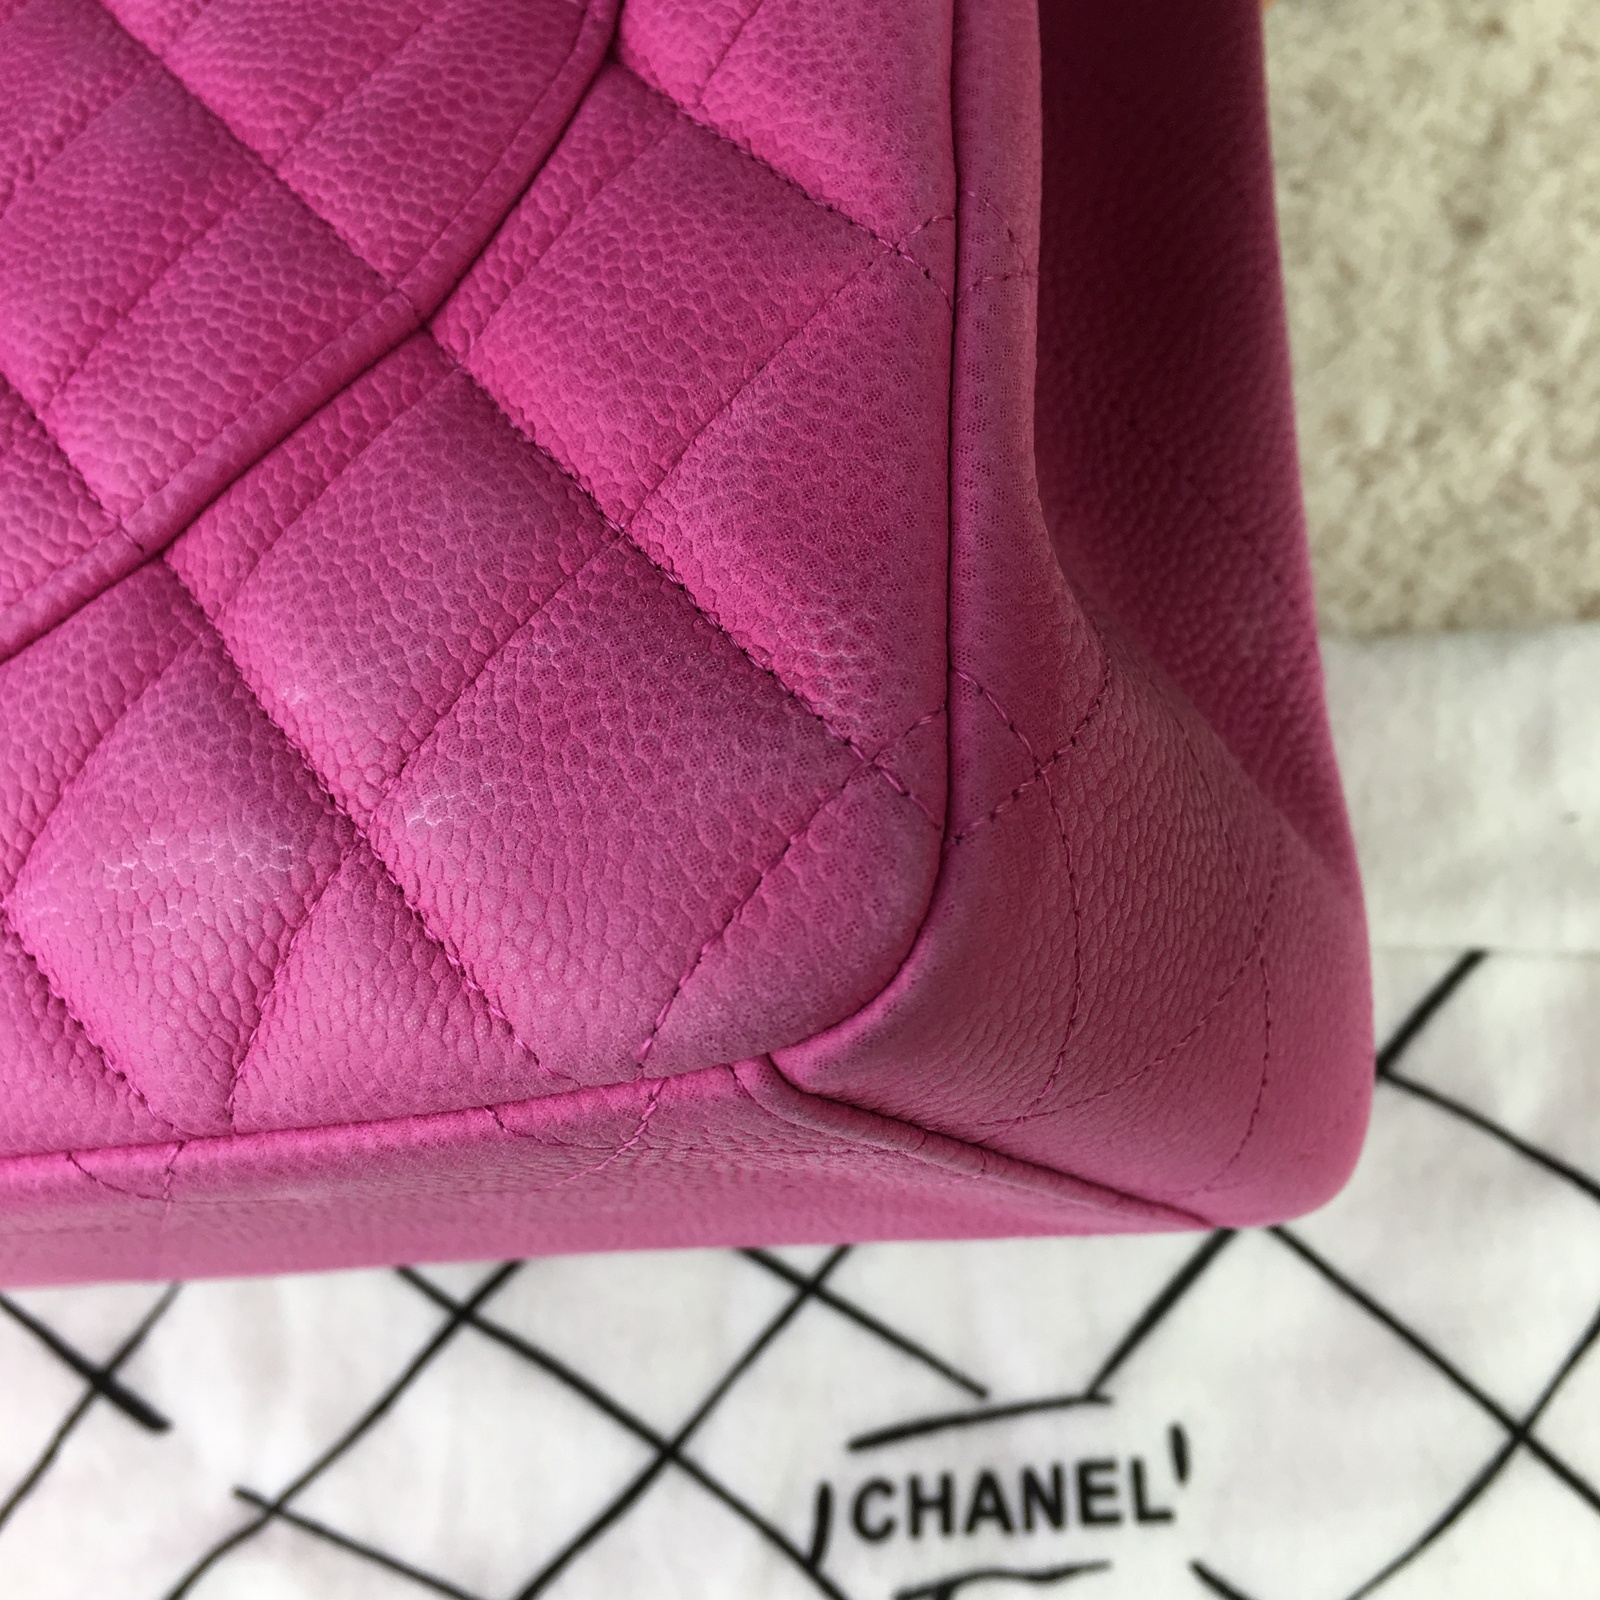 222d19825041 Authentic Chanel Hot Pink Fuchsia Maxi Caviar Leather Double Flap ...